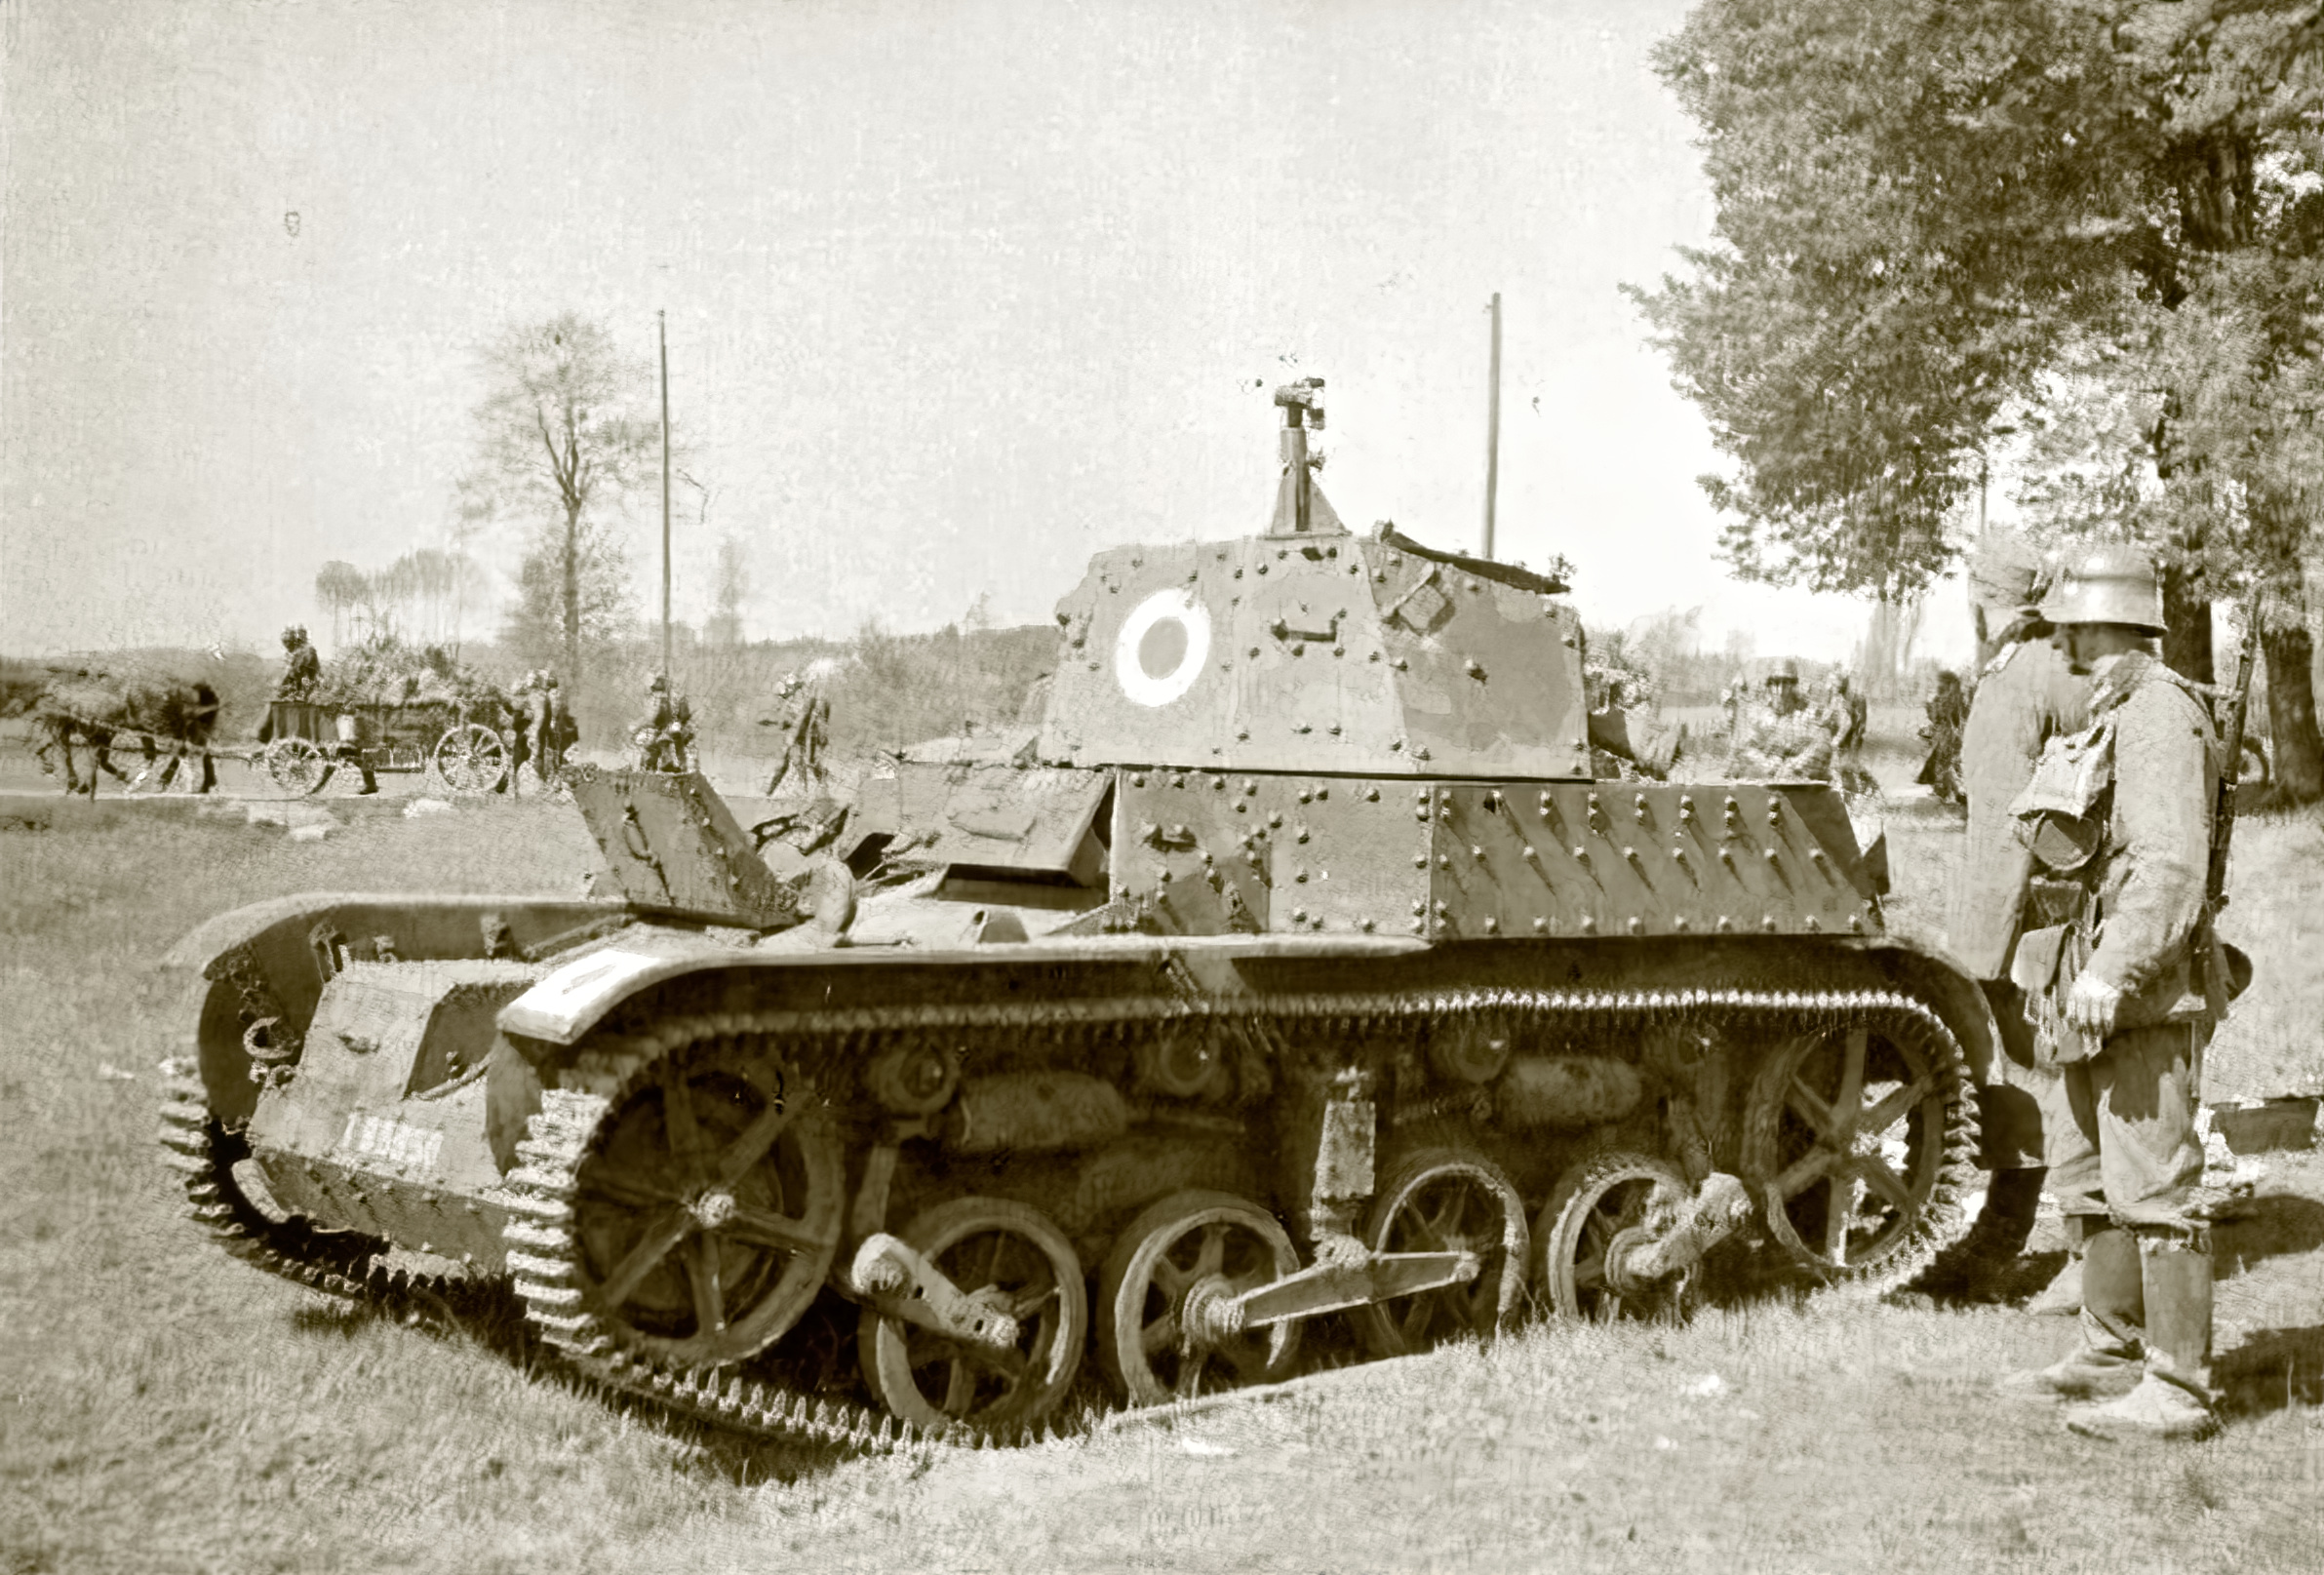 French Army Renault Char AMR 33 abandoned after the battle of France June 1940 ebay 01